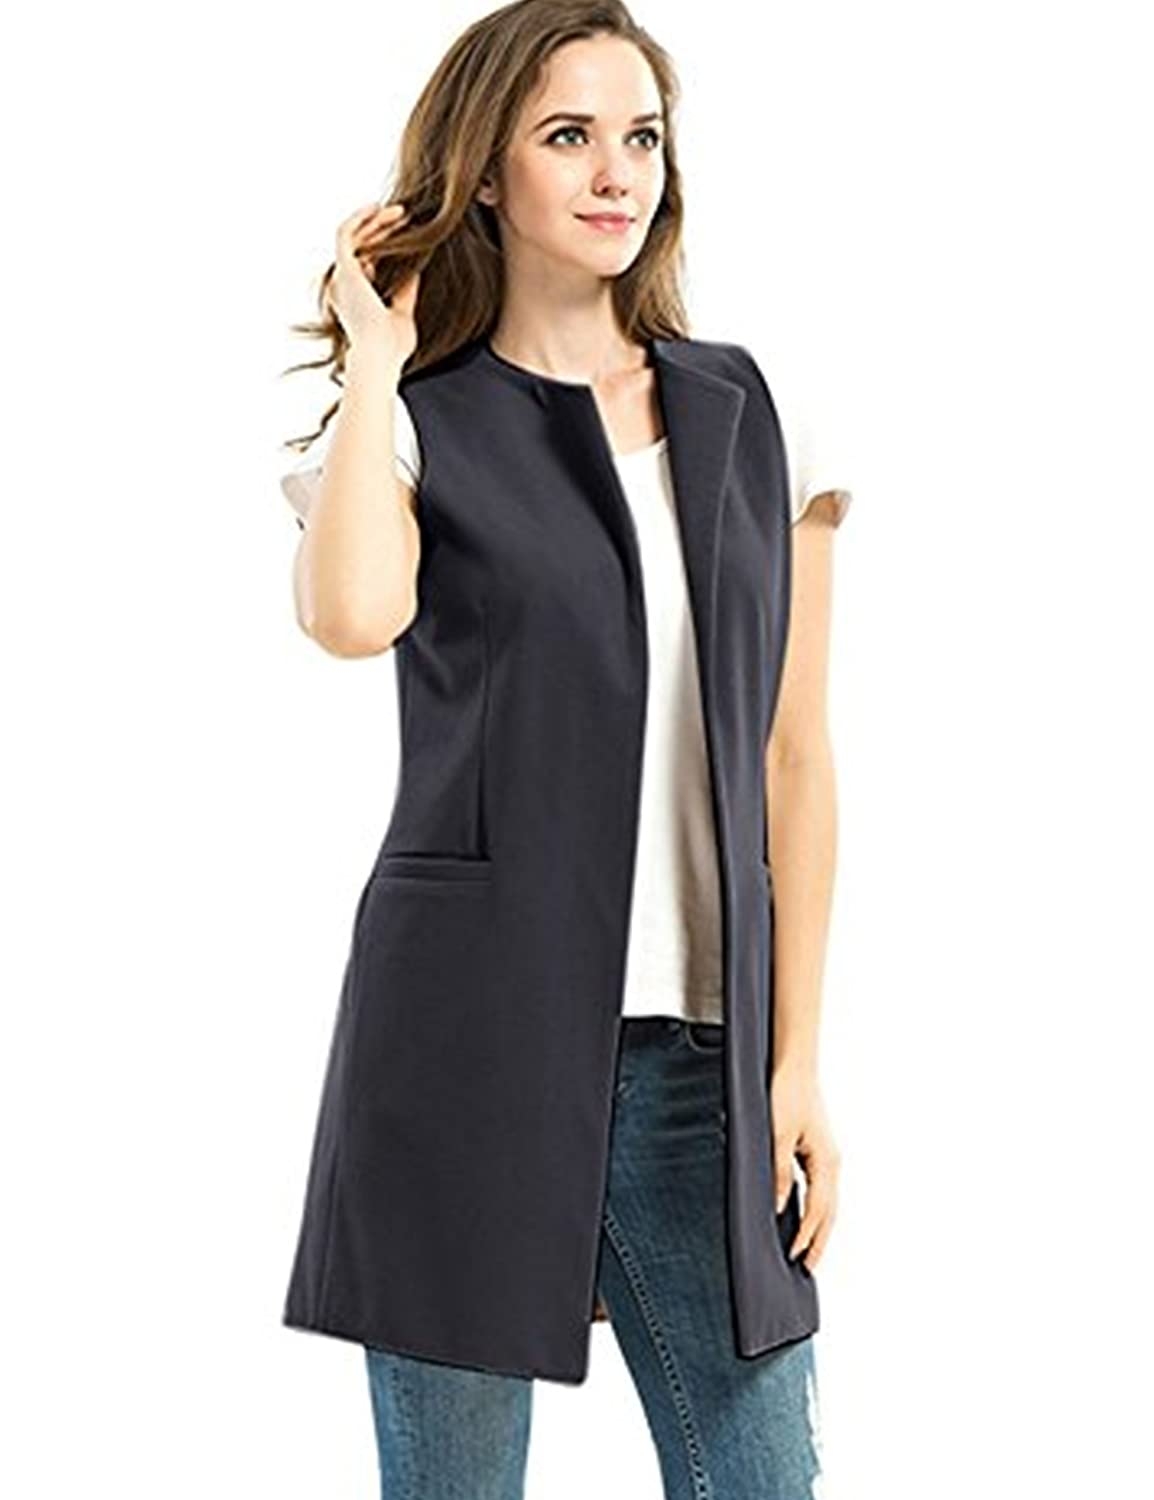 Women's Casual Long Vest Jacket Sleeveless Solid Long Trench Coat Open  Front Blazer Vest With Pockets: Amazon.ca: Clothing & Accessories